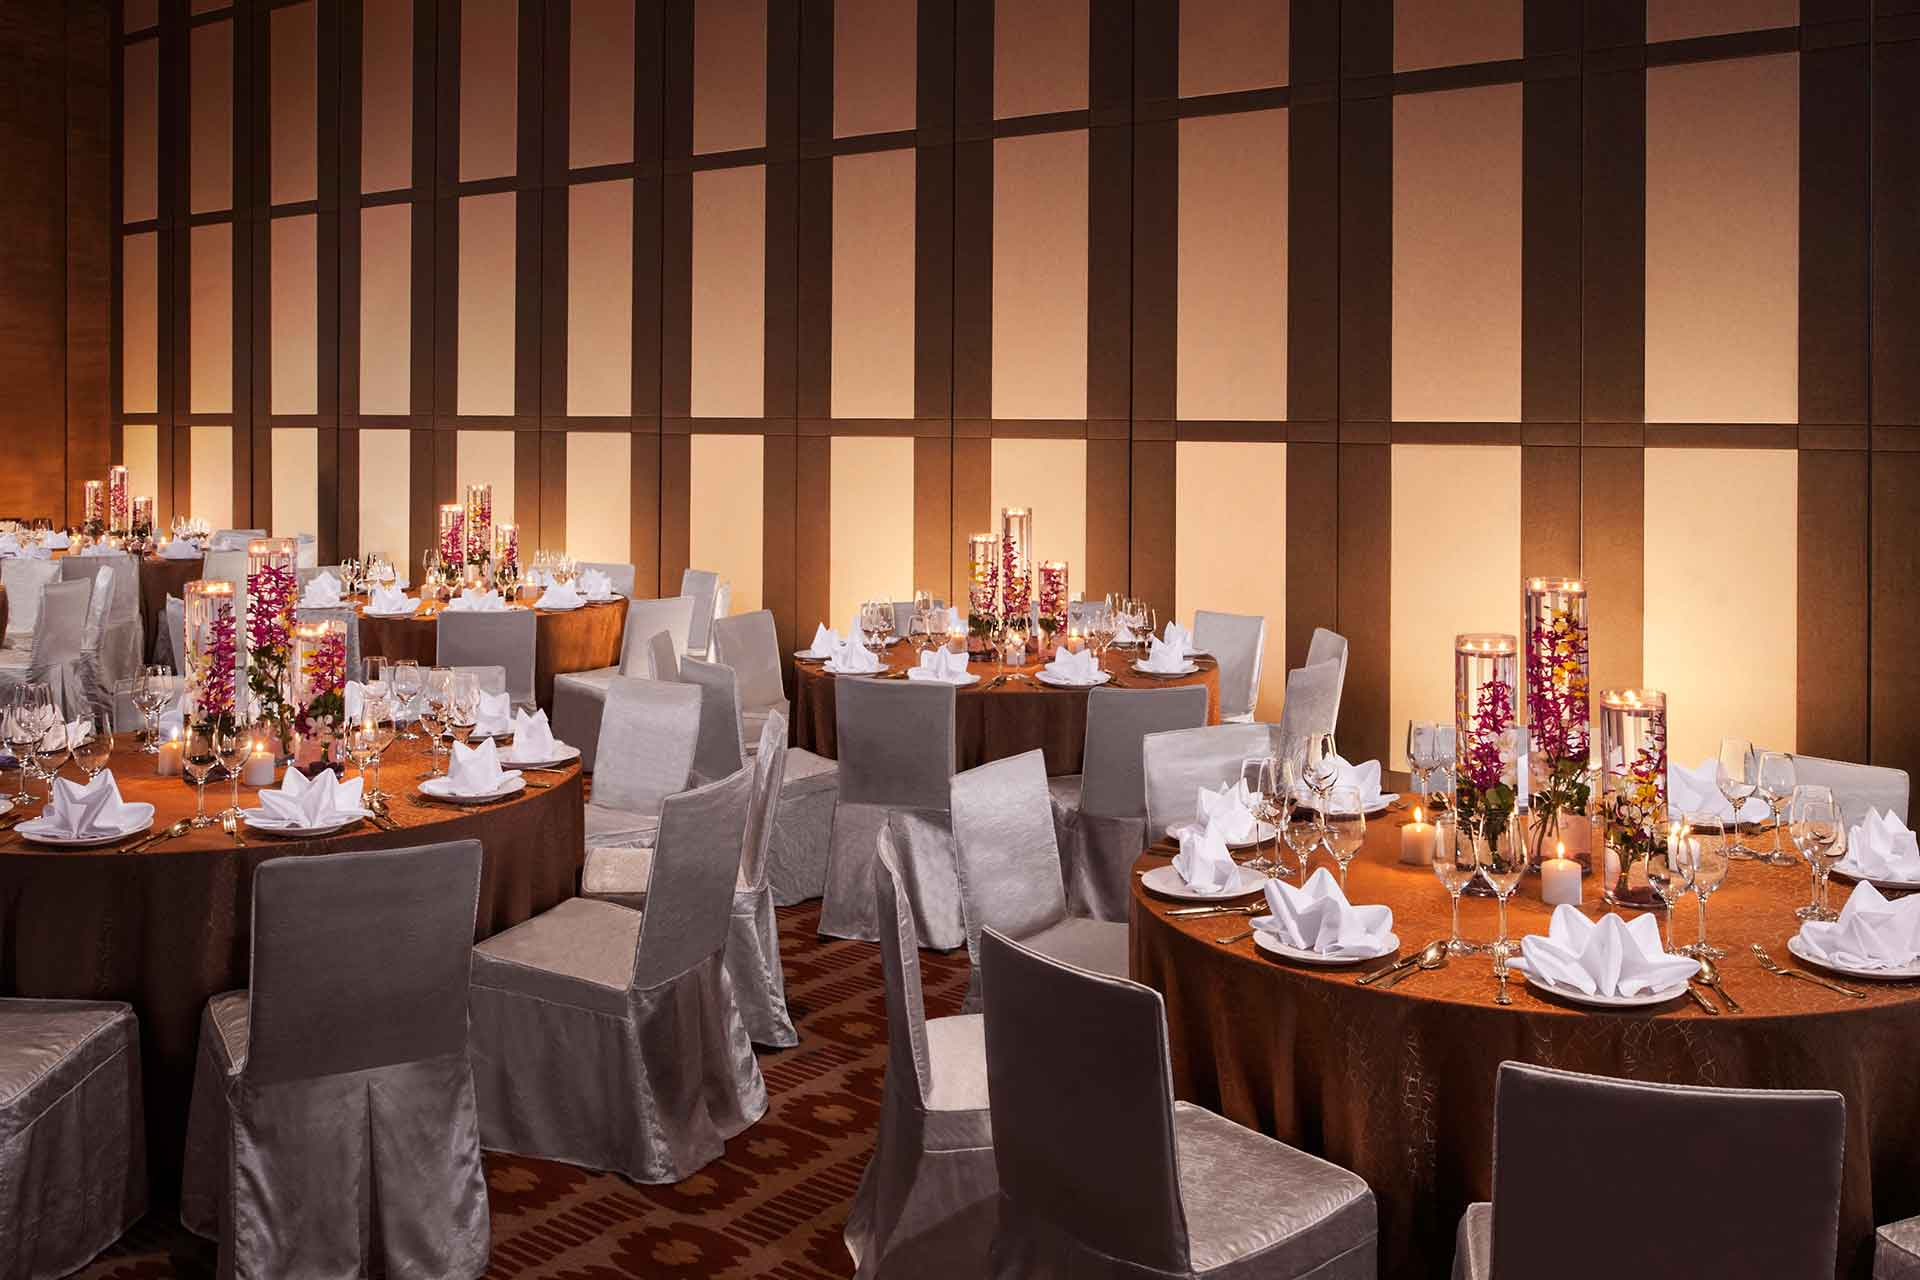 A meeting hall decorated for a wedding